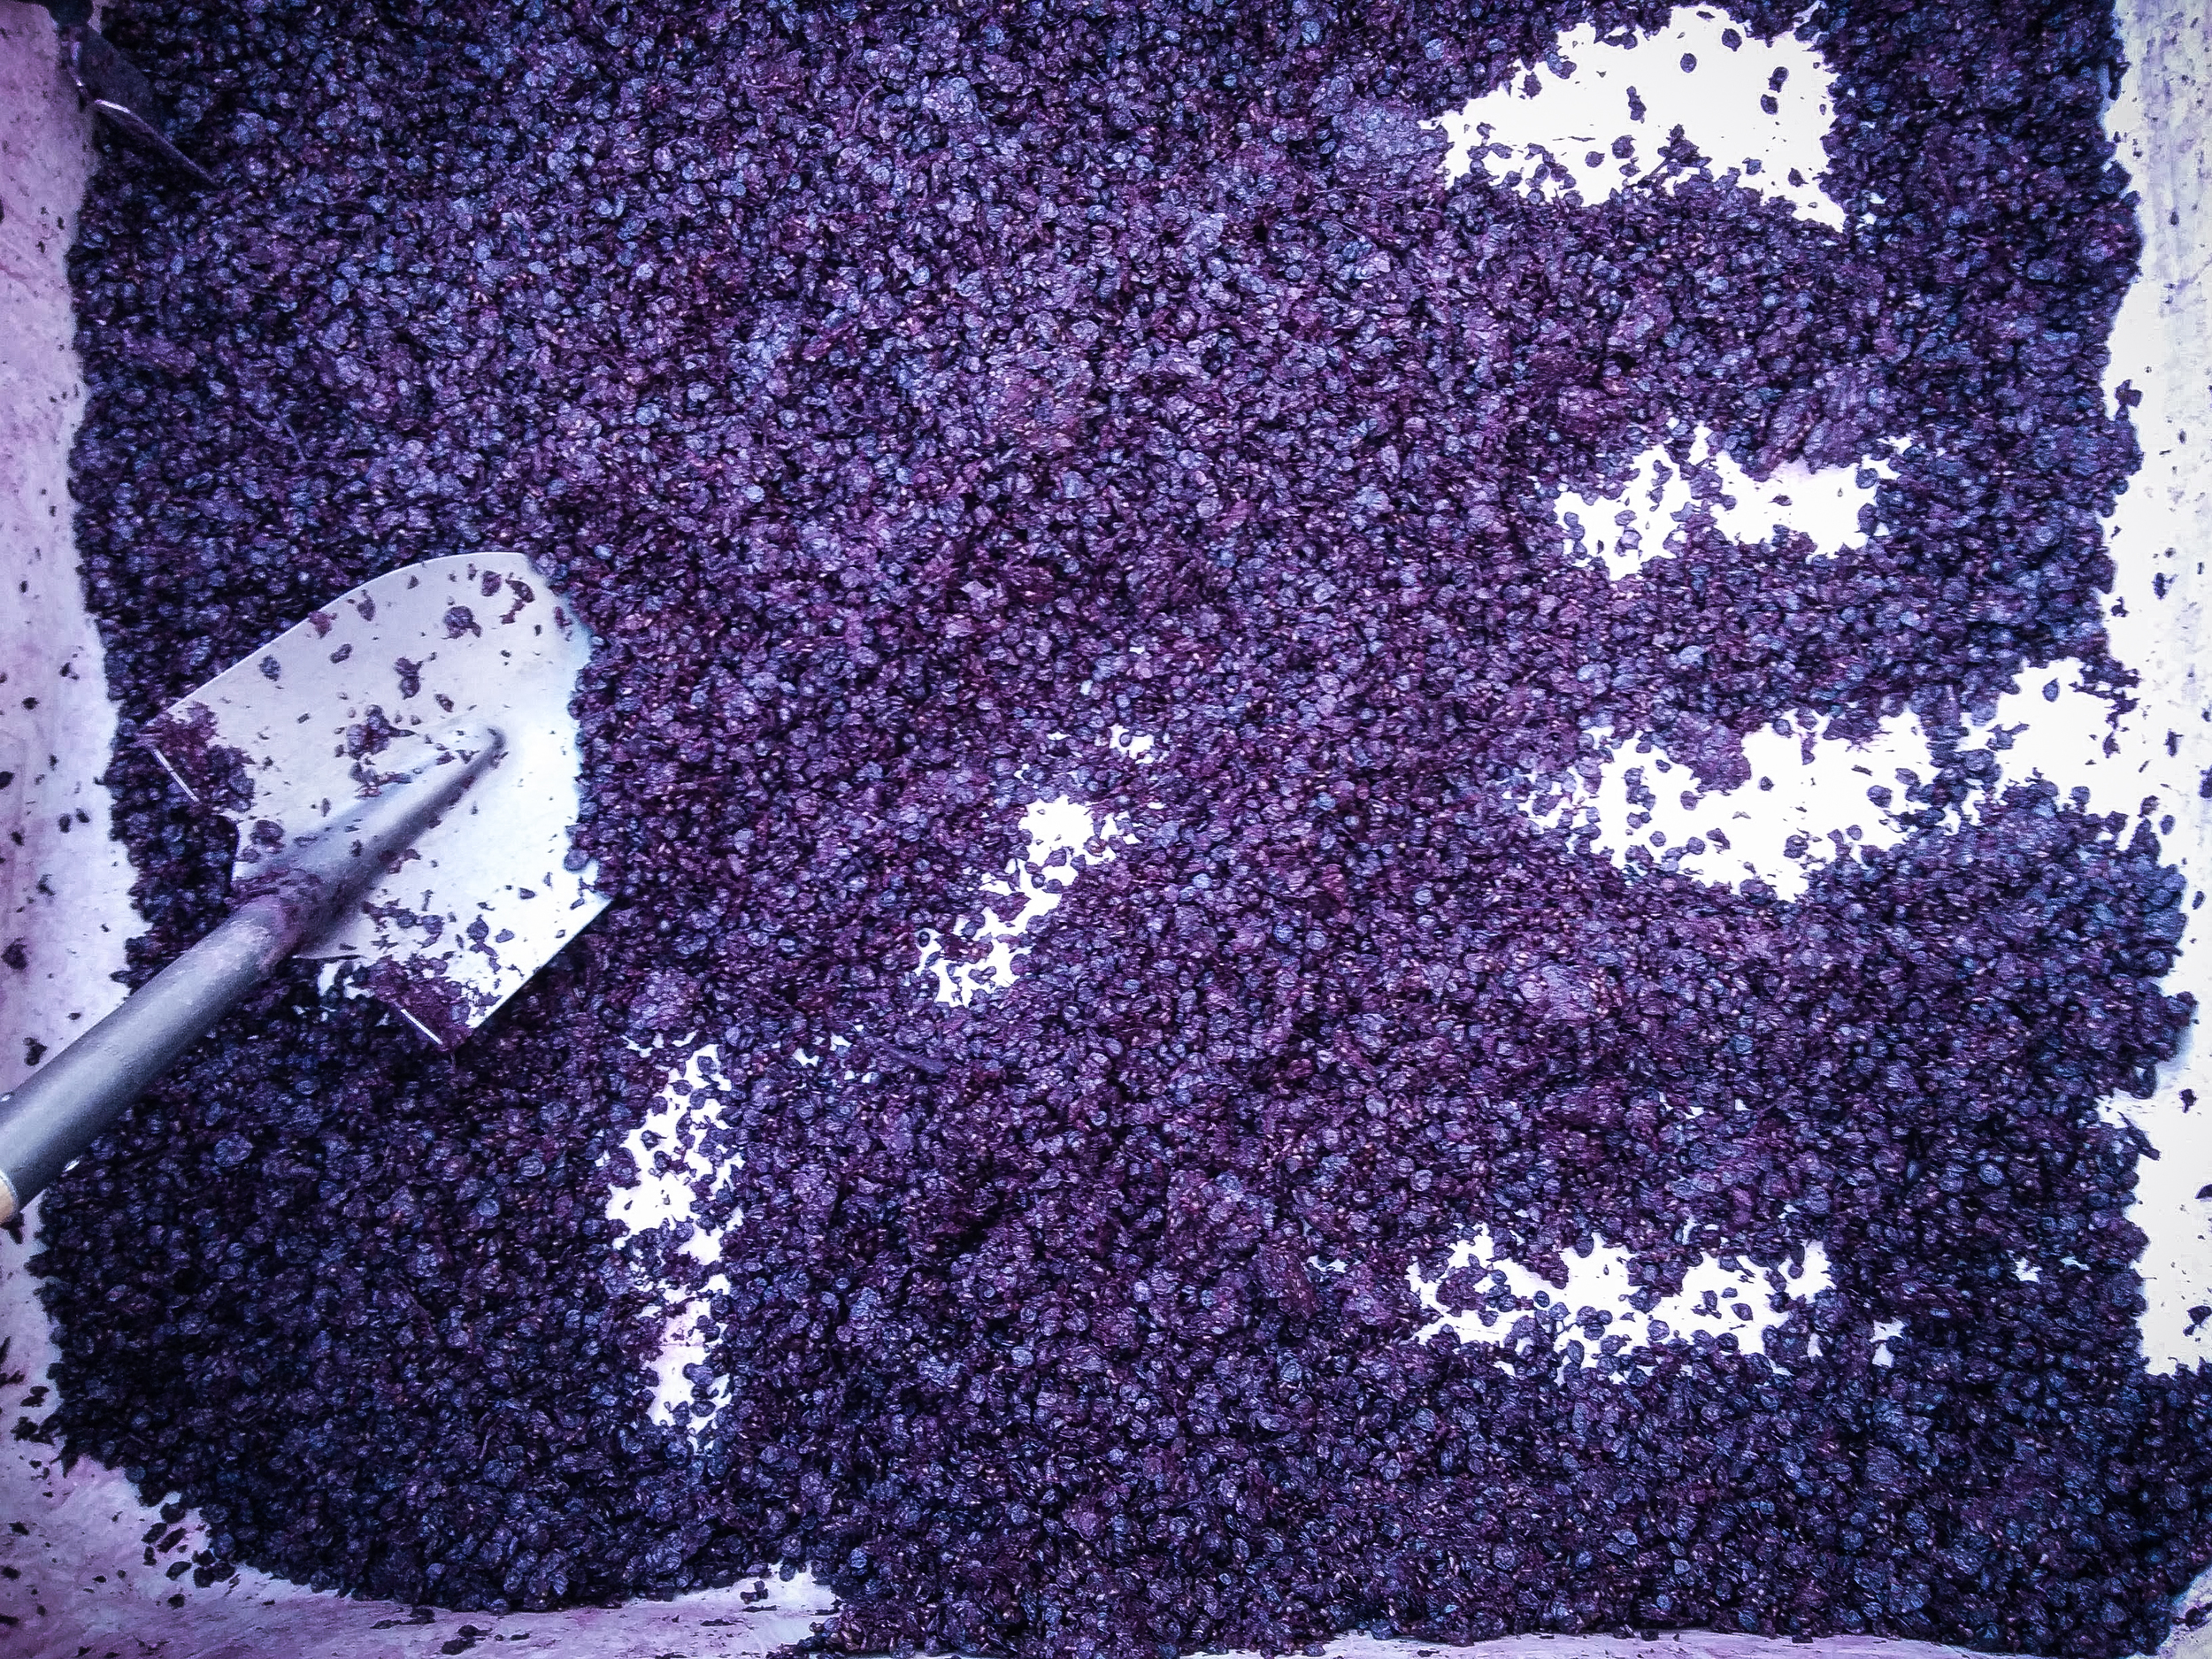 Shoveling Dry Creek Zinfandel Pomace...don't worry we cleaned the shovel first.